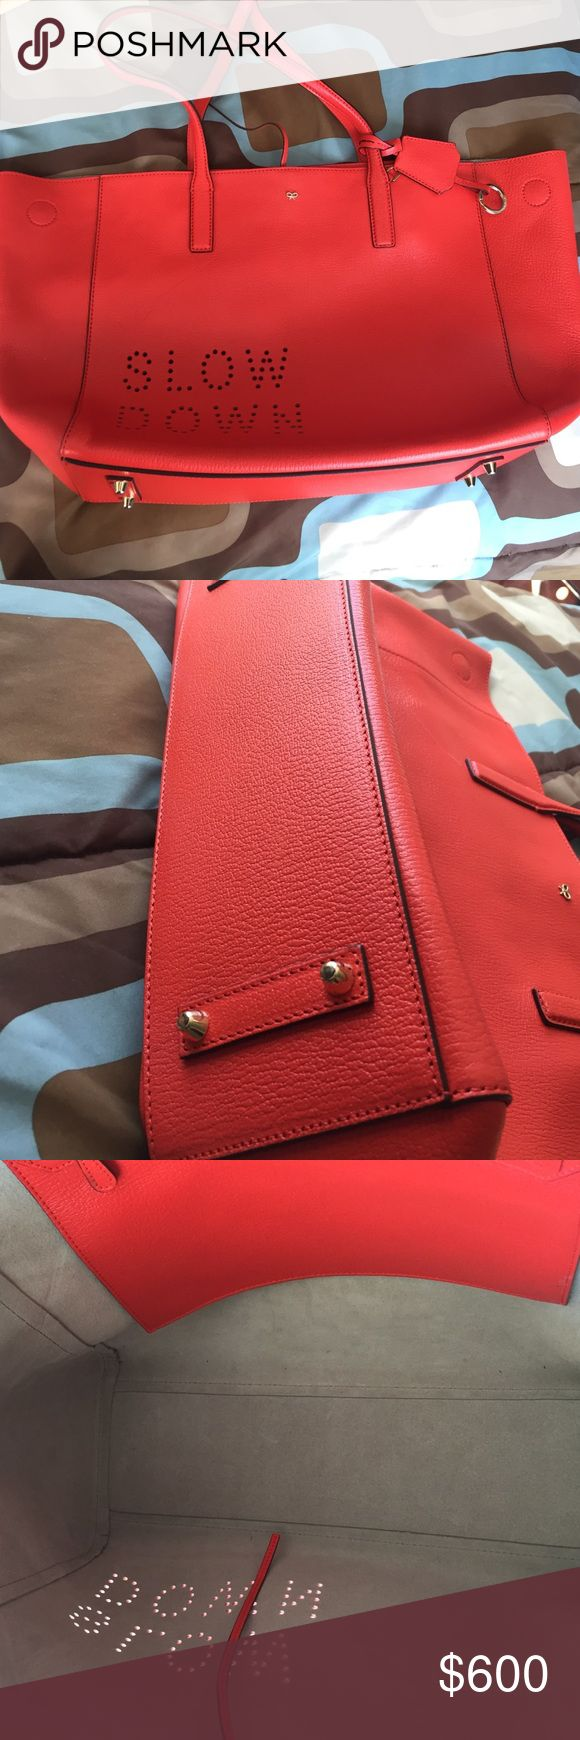 Anya Hindmarch tote bag Like new clean inside has One scratch on front checkout last picture Anya Hindmarch Bags Totes